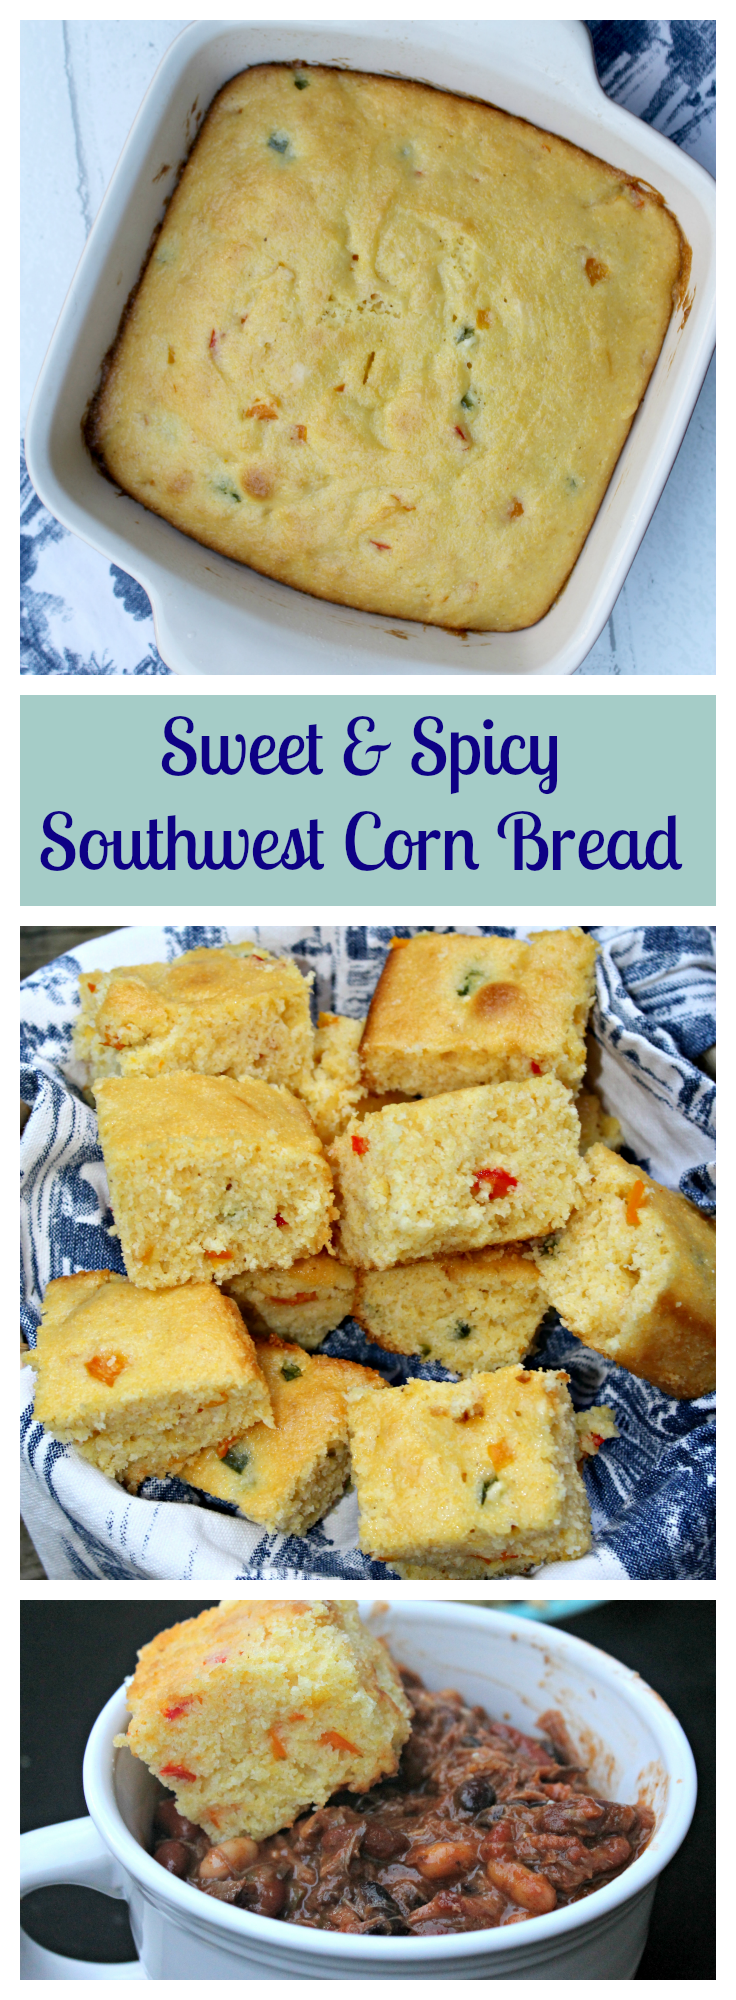 Nothing says cold weather comfort food like chili and my Sweet & Spicy Southwest Corn Bread! Talk about slap your mamma good!